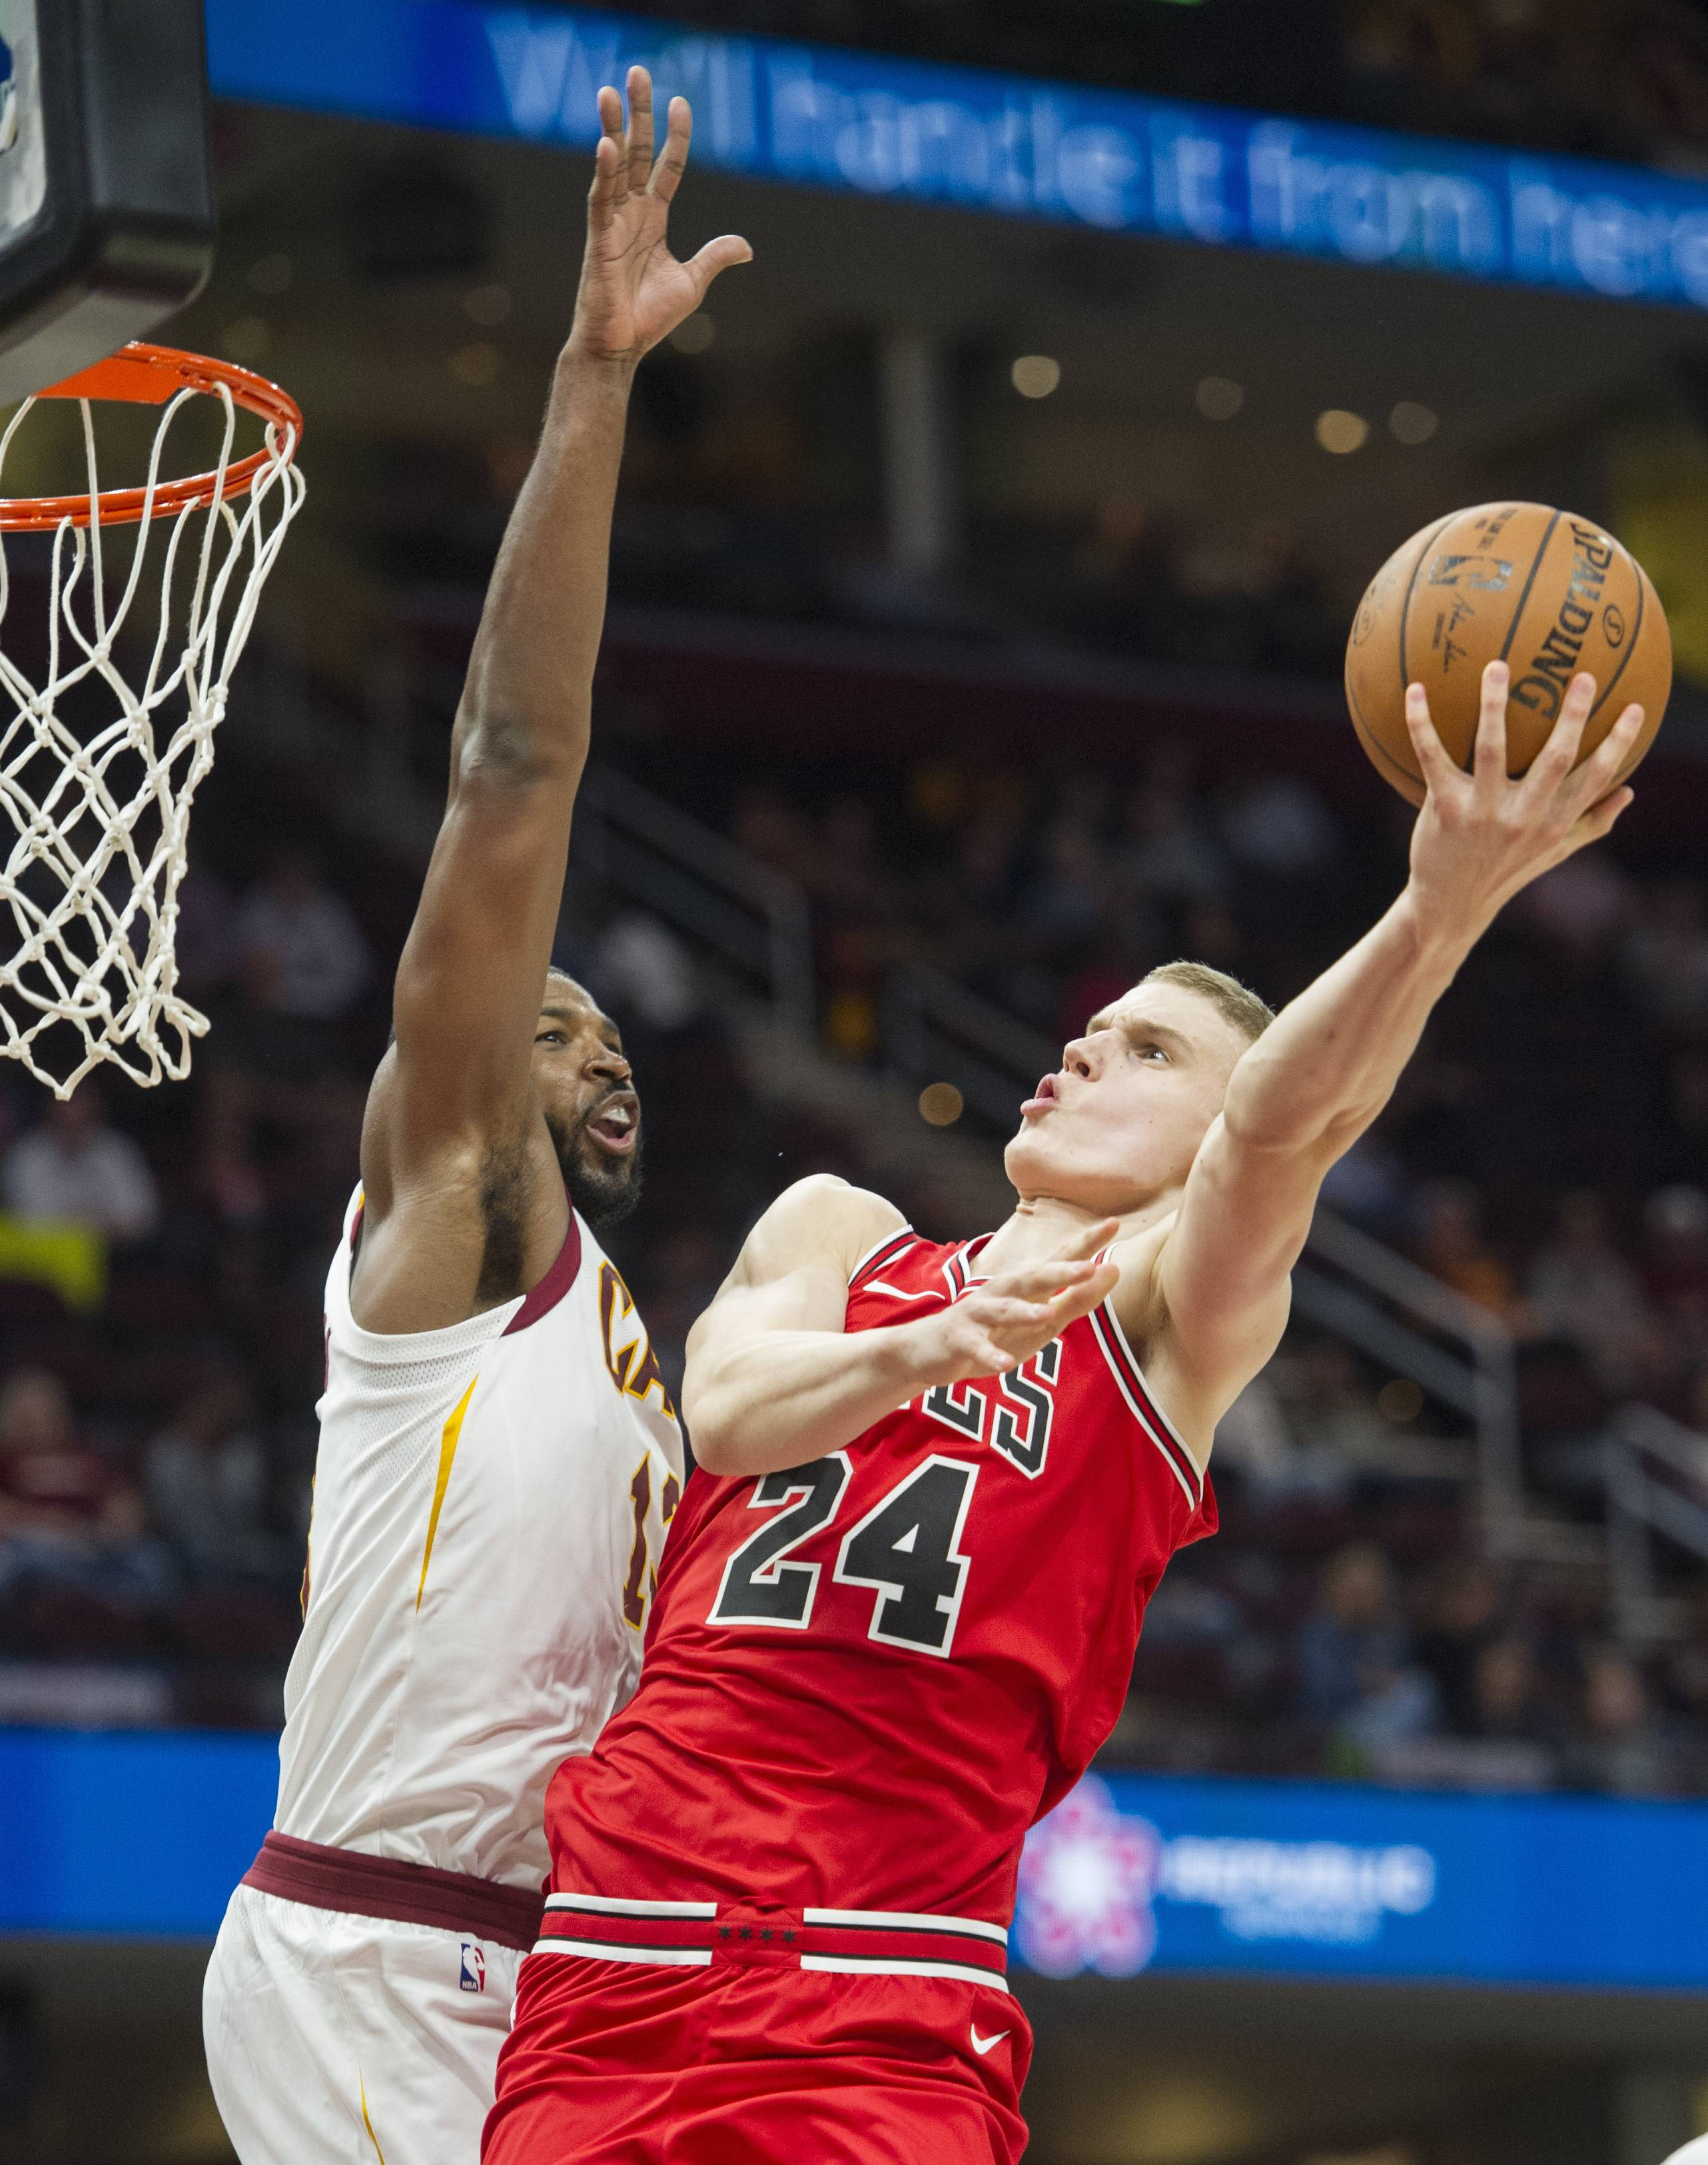 As Bulls' opener looms, Hoiberg faces some tough calls on playing time